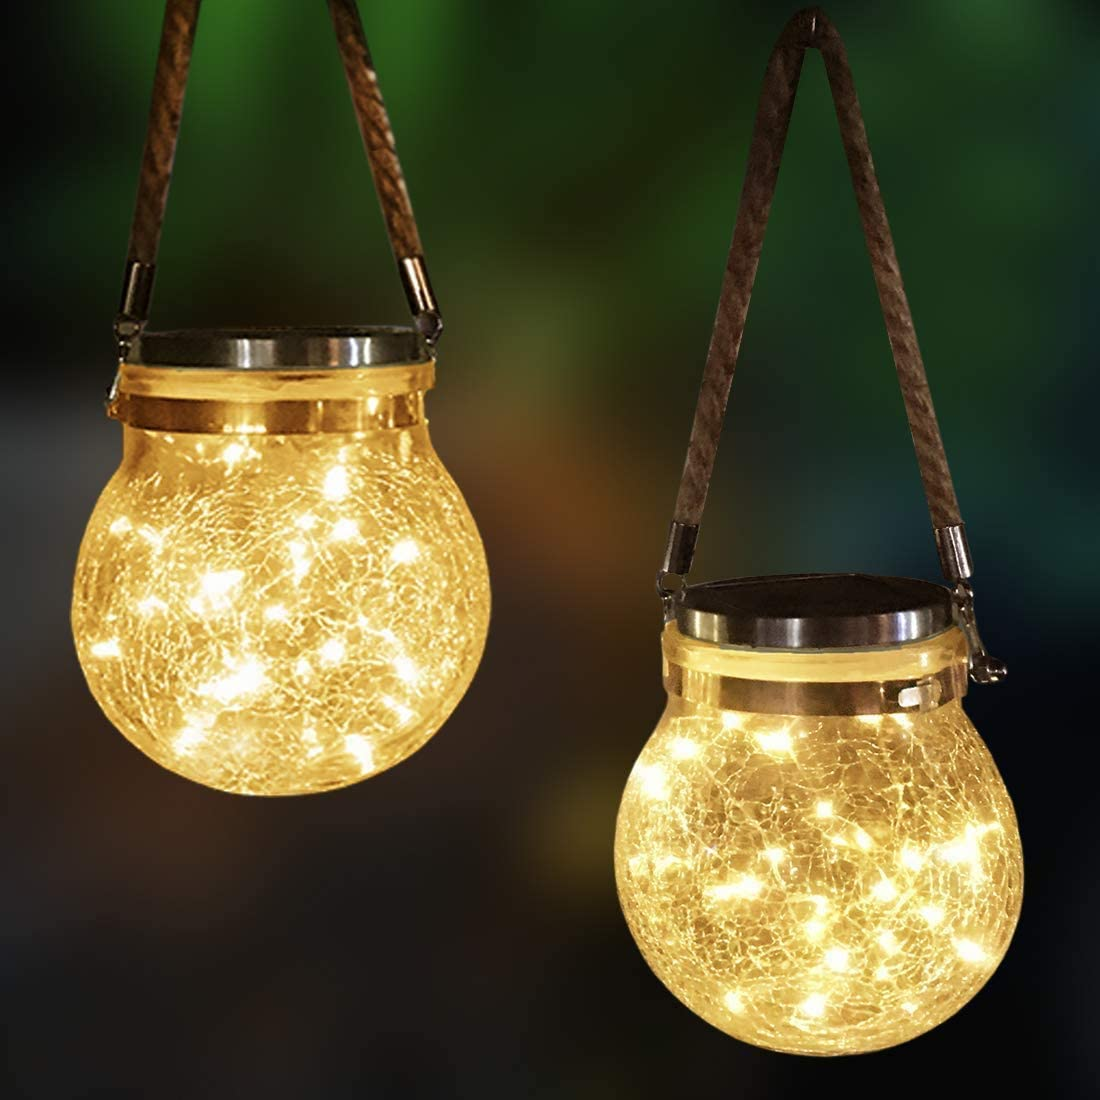 Mafiti 20 LEDs Hanging Solar Light Outdoor Jar Lid Lights, 2 Pack Led String Fairy Lights Solar Laterns Table Lights, Great Outdoor Lawn D coration for Yard Party